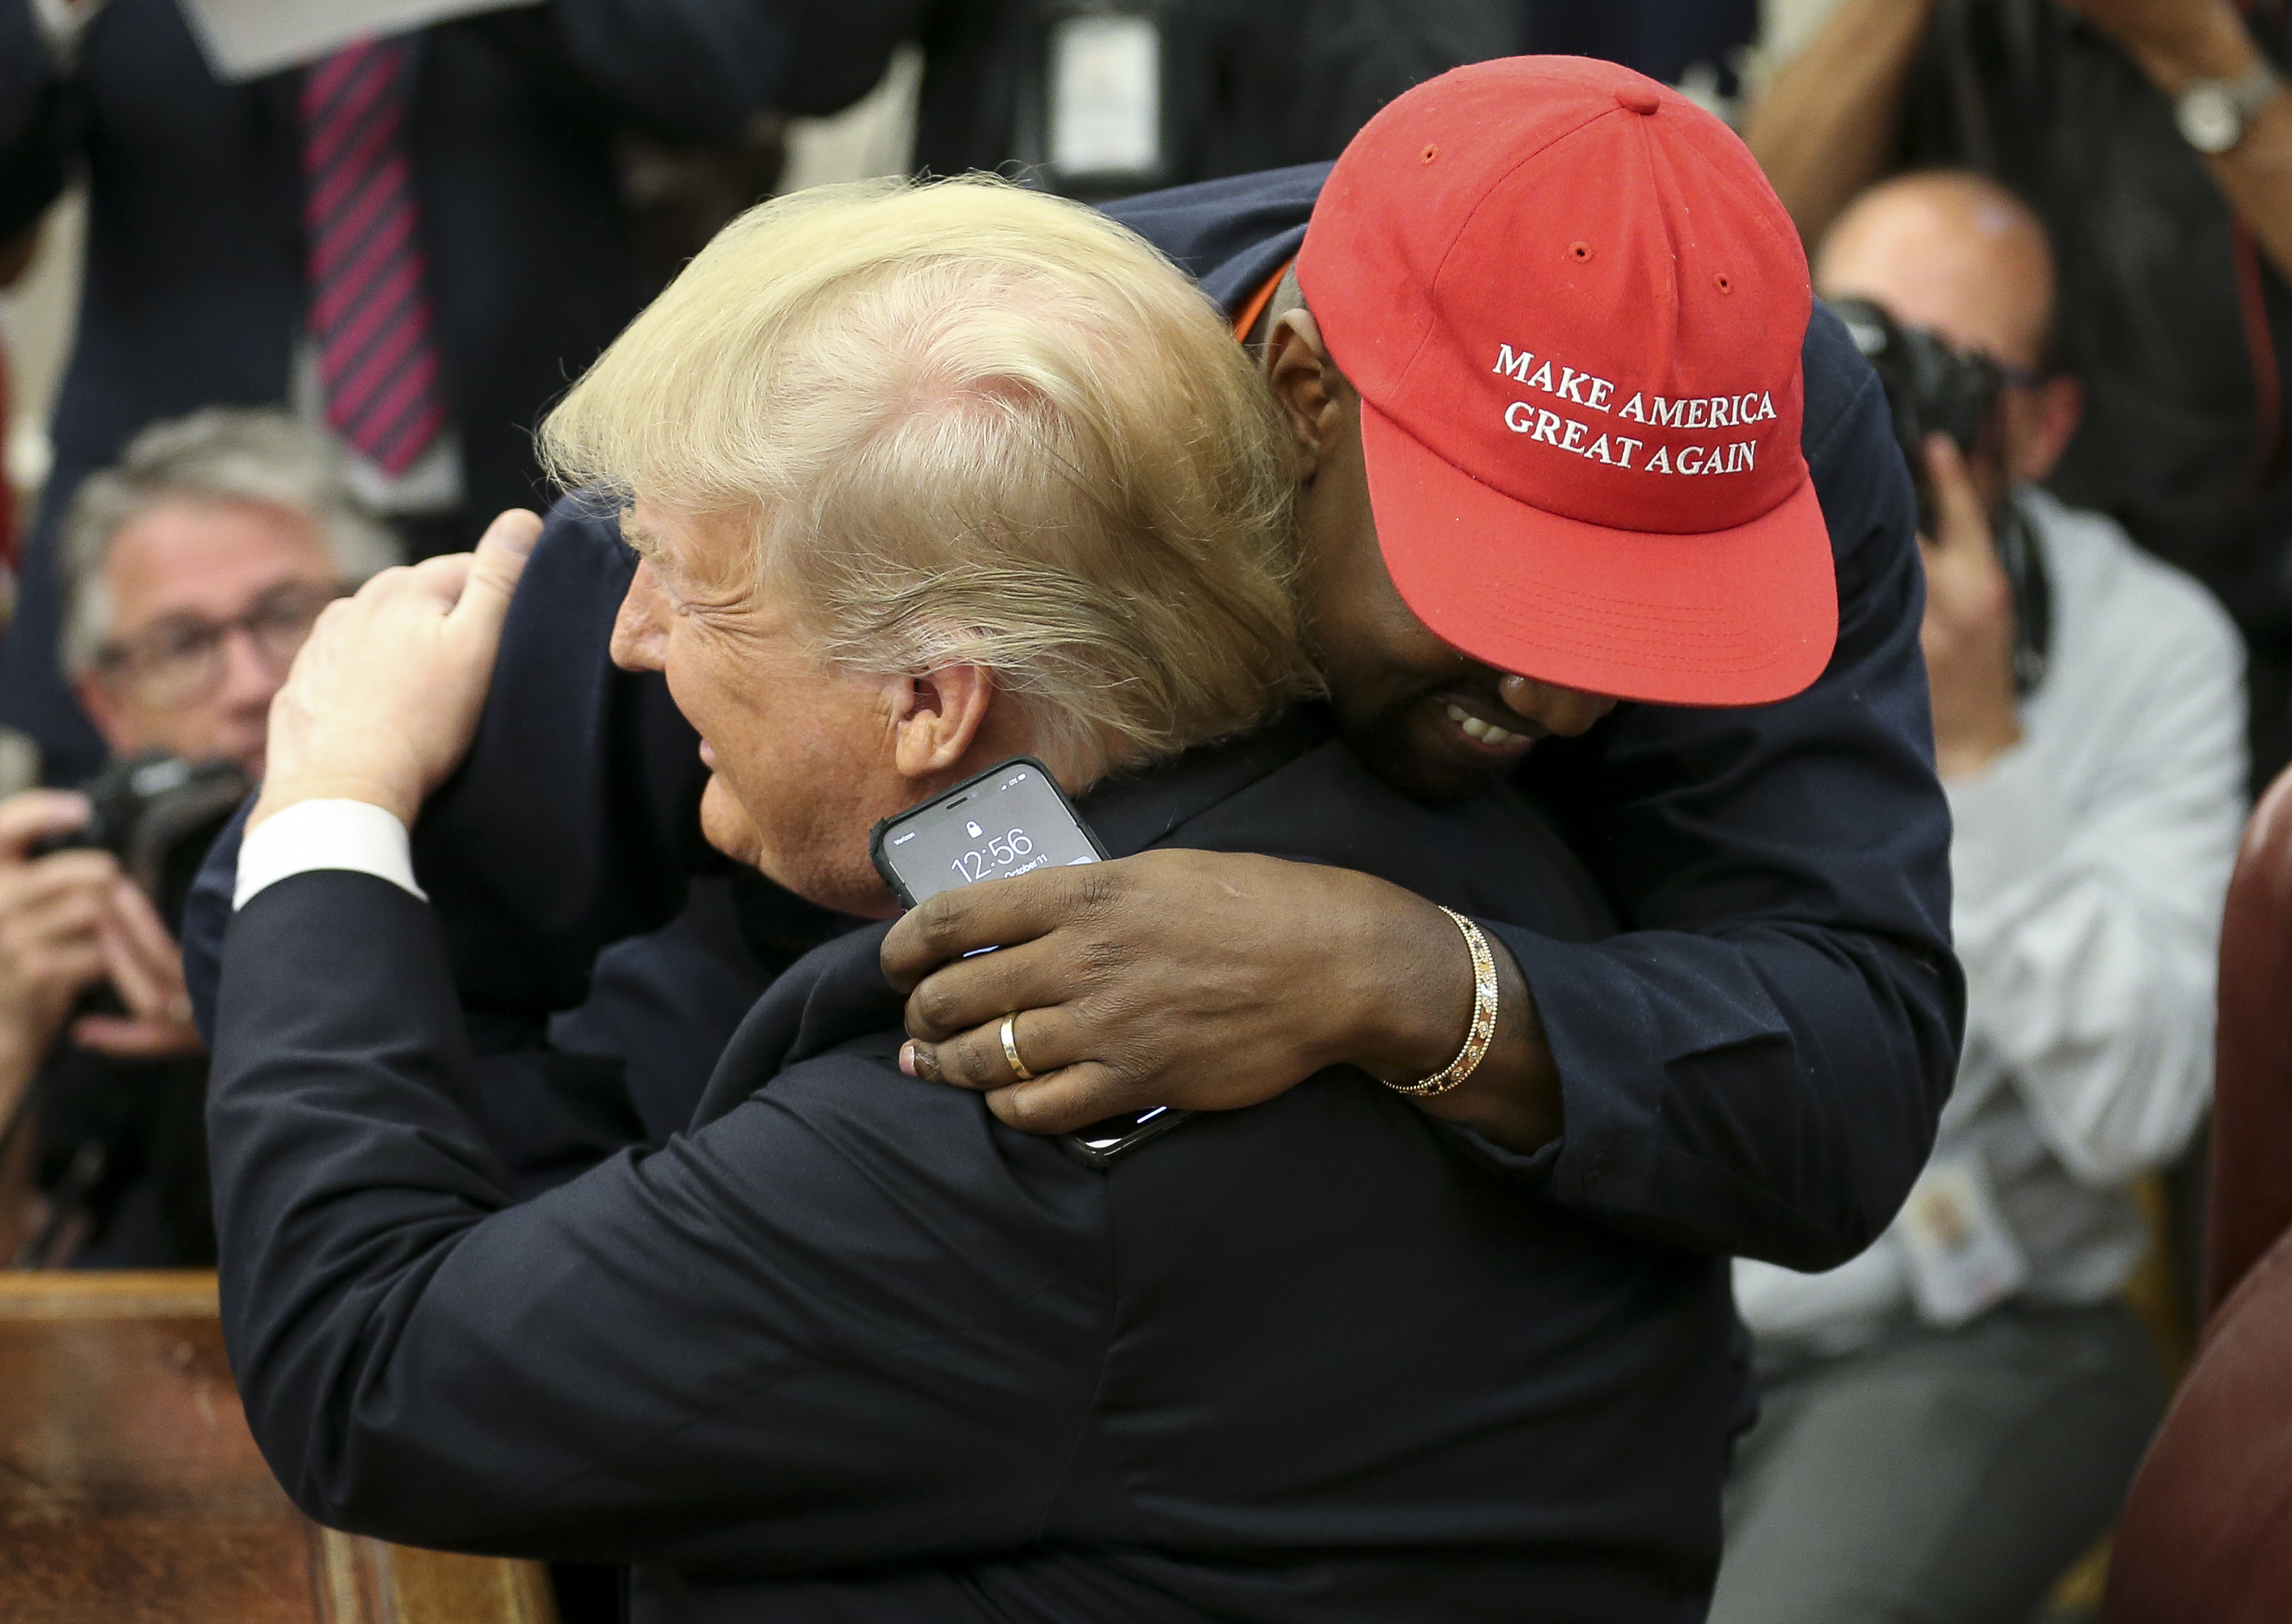 (AFP OUT) (EDITORS NOTE: Retransmission with alternate crop.) U.S. President Donald Trump hugs rapper Kanye West during a meeting in the Oval office of the White House on October 11, 2018 in Washington, DC.